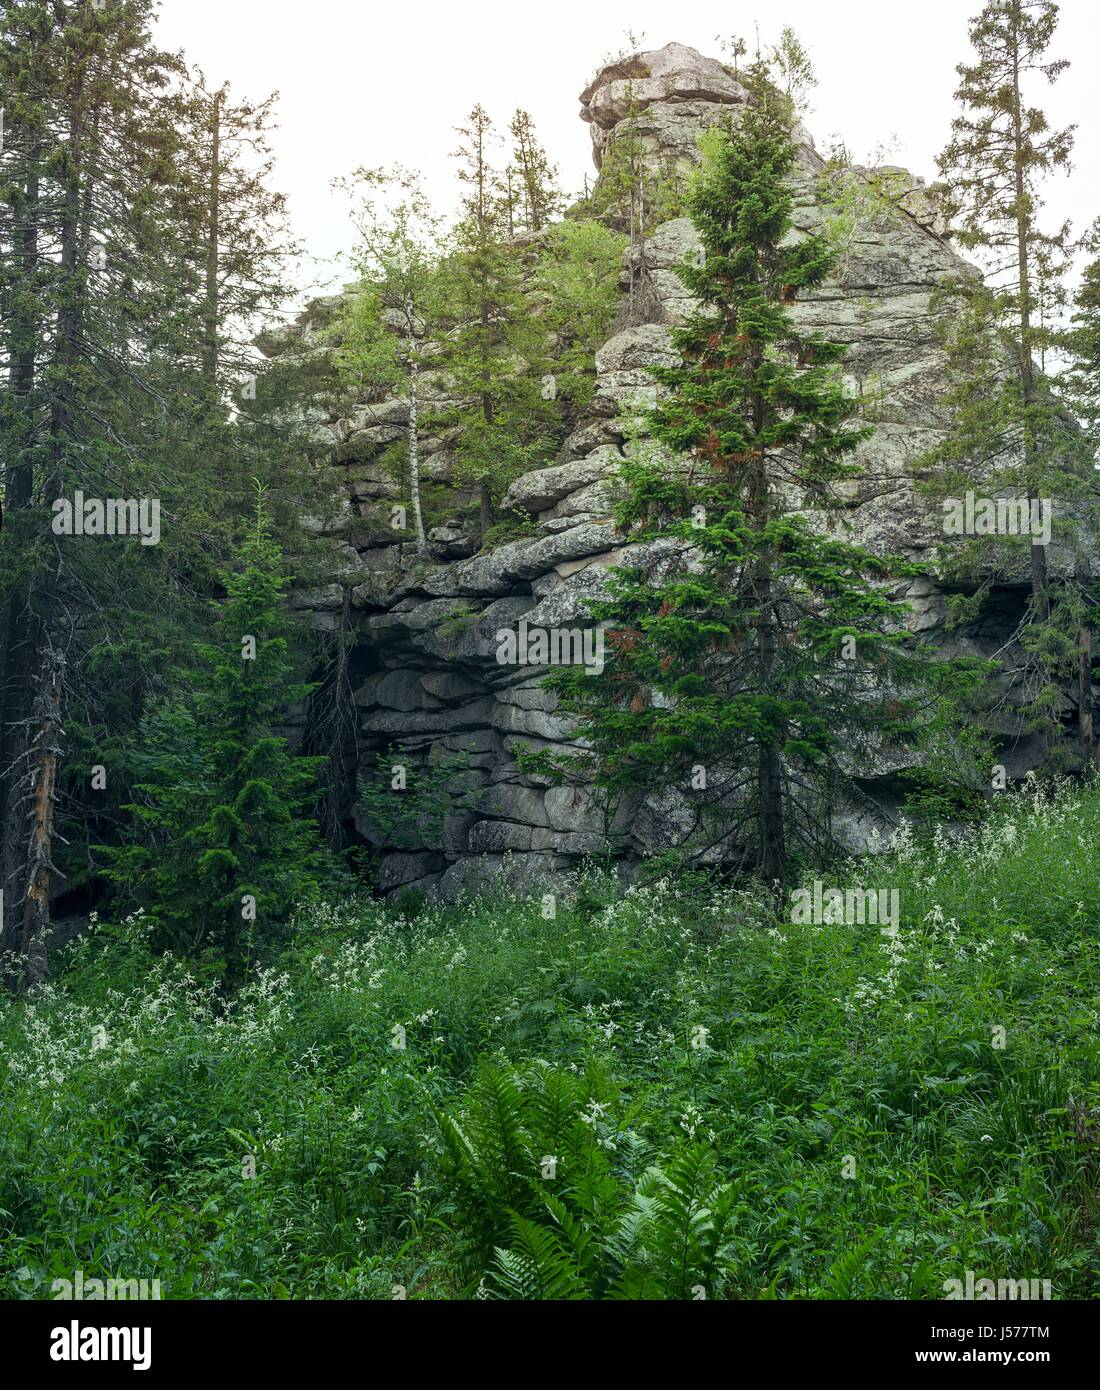 A stone remains in the forest. The nature of the southern Urals. Wild places. Stone giant. - Stock Image